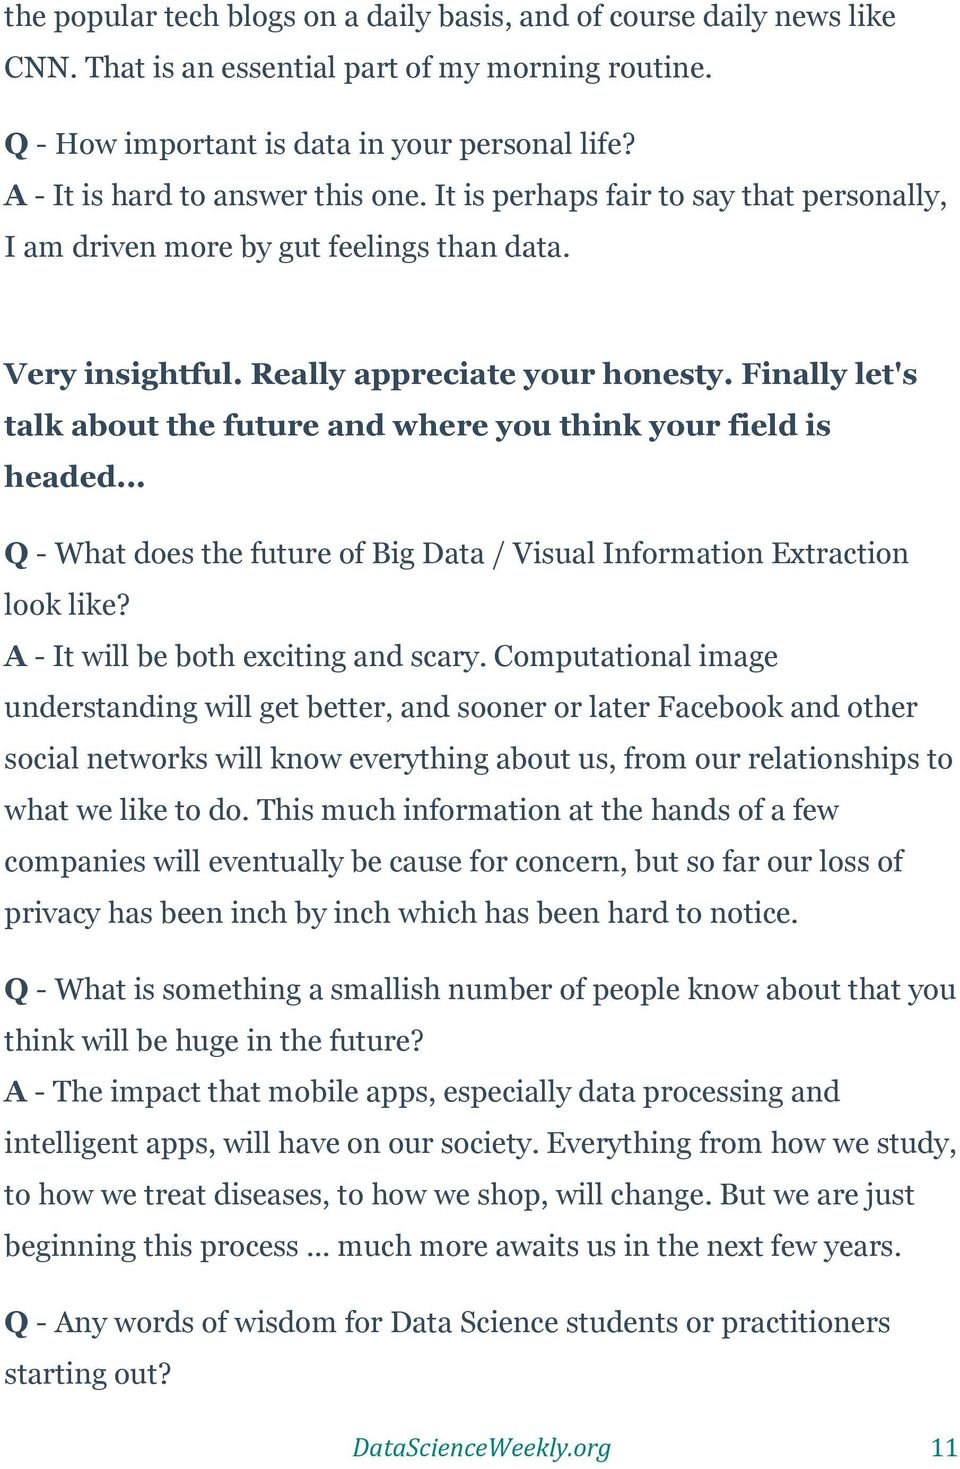 Finally let's talk about the future and where you think your field is headed... Q - What does the future of Big Data / Visual Information Extraction look like? A - It will be both exciting and scary.